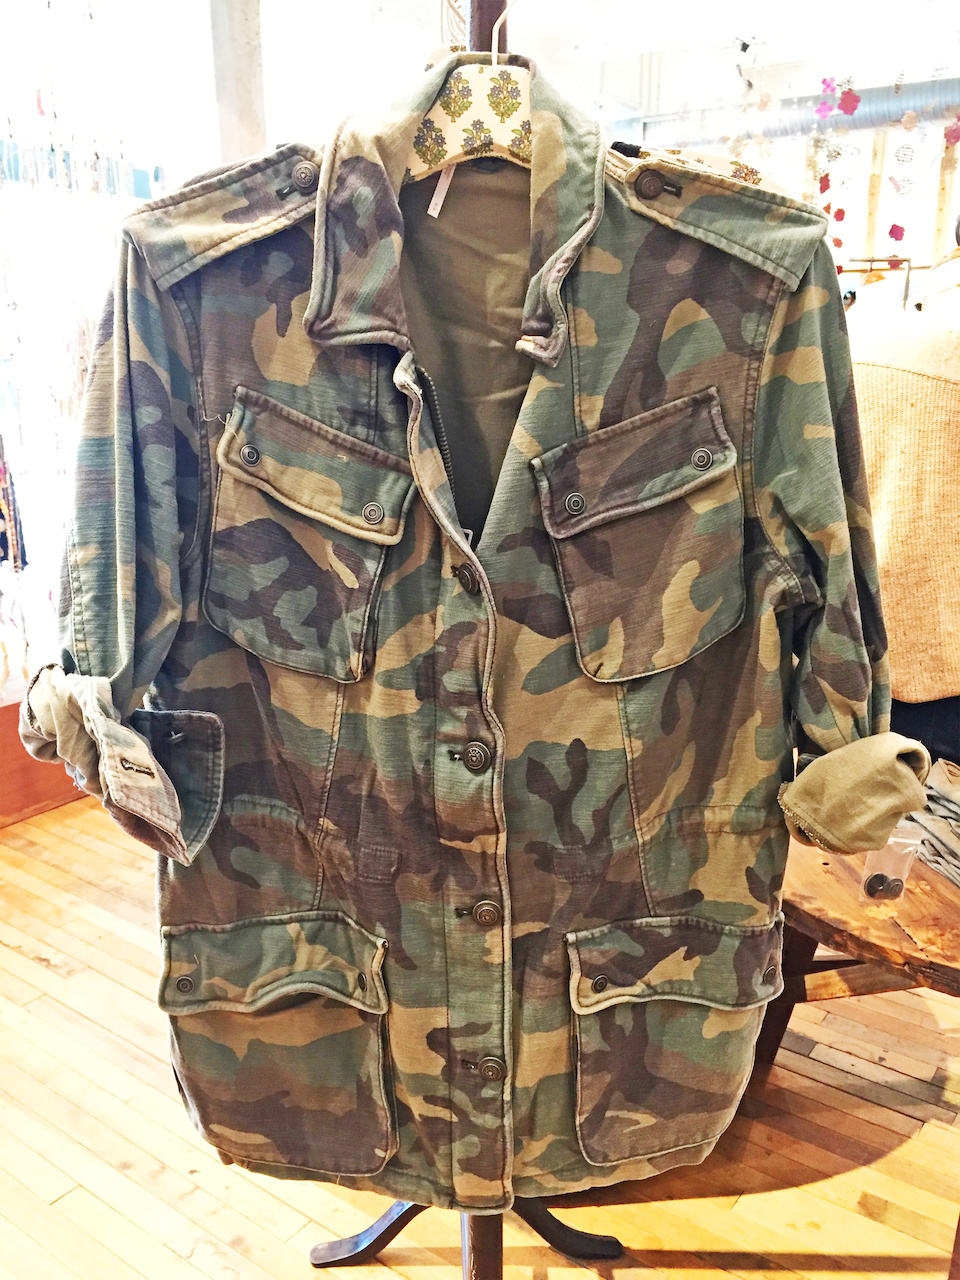 Styleblueprint atlanta september finds fatigue jacket